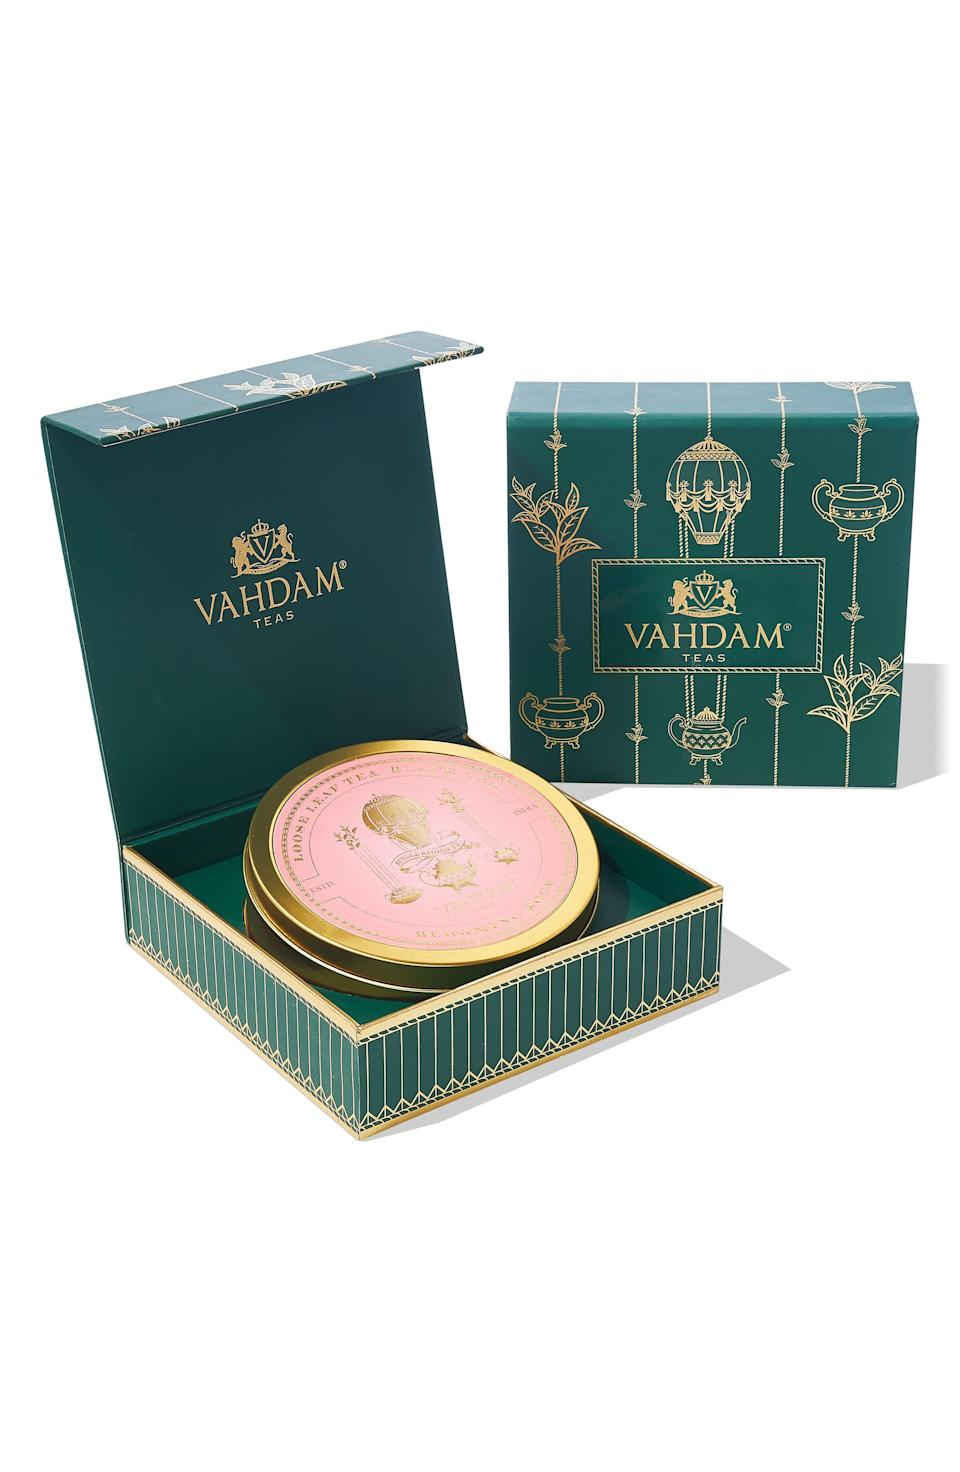 """<p><strong>VAHDAM TEAS</strong></p><p>nordstrom.com</p><p><strong>$18.00</strong></p><p><a href=""""https://go.redirectingat.com?id=74968X1596630&url=https%3A%2F%2Fshop.nordstrom.com%2Fs%2Fvahdam-teas-signature-private-reserve-blooming-rose-loose-leaf-black-tea%2F5476496&sref=https%3A%2F%2Fwww.redbookmag.com%2Ffood-recipes%2Fg35419747%2Fbest-tea-brands%2F"""" rel=""""nofollow noopener"""" target=""""_blank"""" data-ylk=""""slk:Shop Now"""" class=""""link rapid-noclick-resp"""">Shop Now</a></p><p>Taste some of the best (not to mention most beautiful) teas India has to offer with Vahdam. Not only are they certified climate- and plastic-neutral, but a portion of their proceeds go to improving educational opportunities in India too, so it's a cup you can feel good about brewing. </p>"""